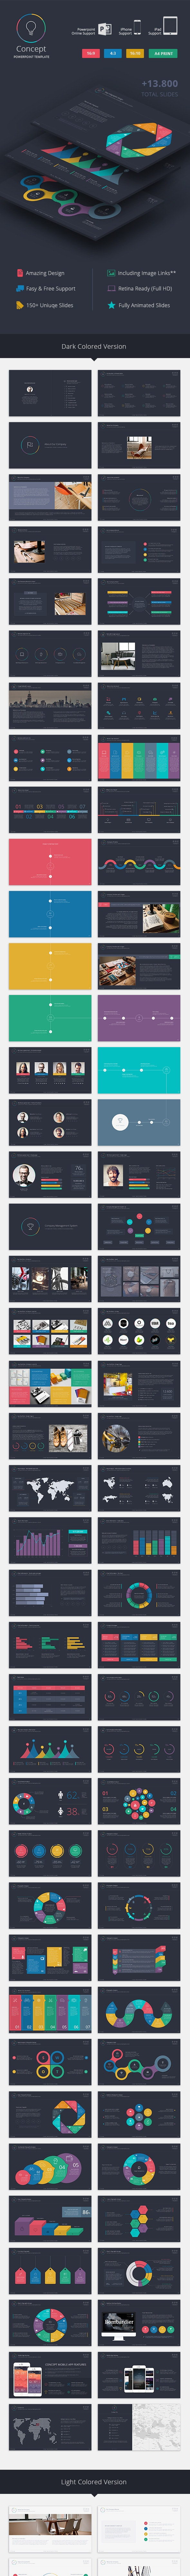 Concept Powerpoint Template - Creative PowerPoint Templates